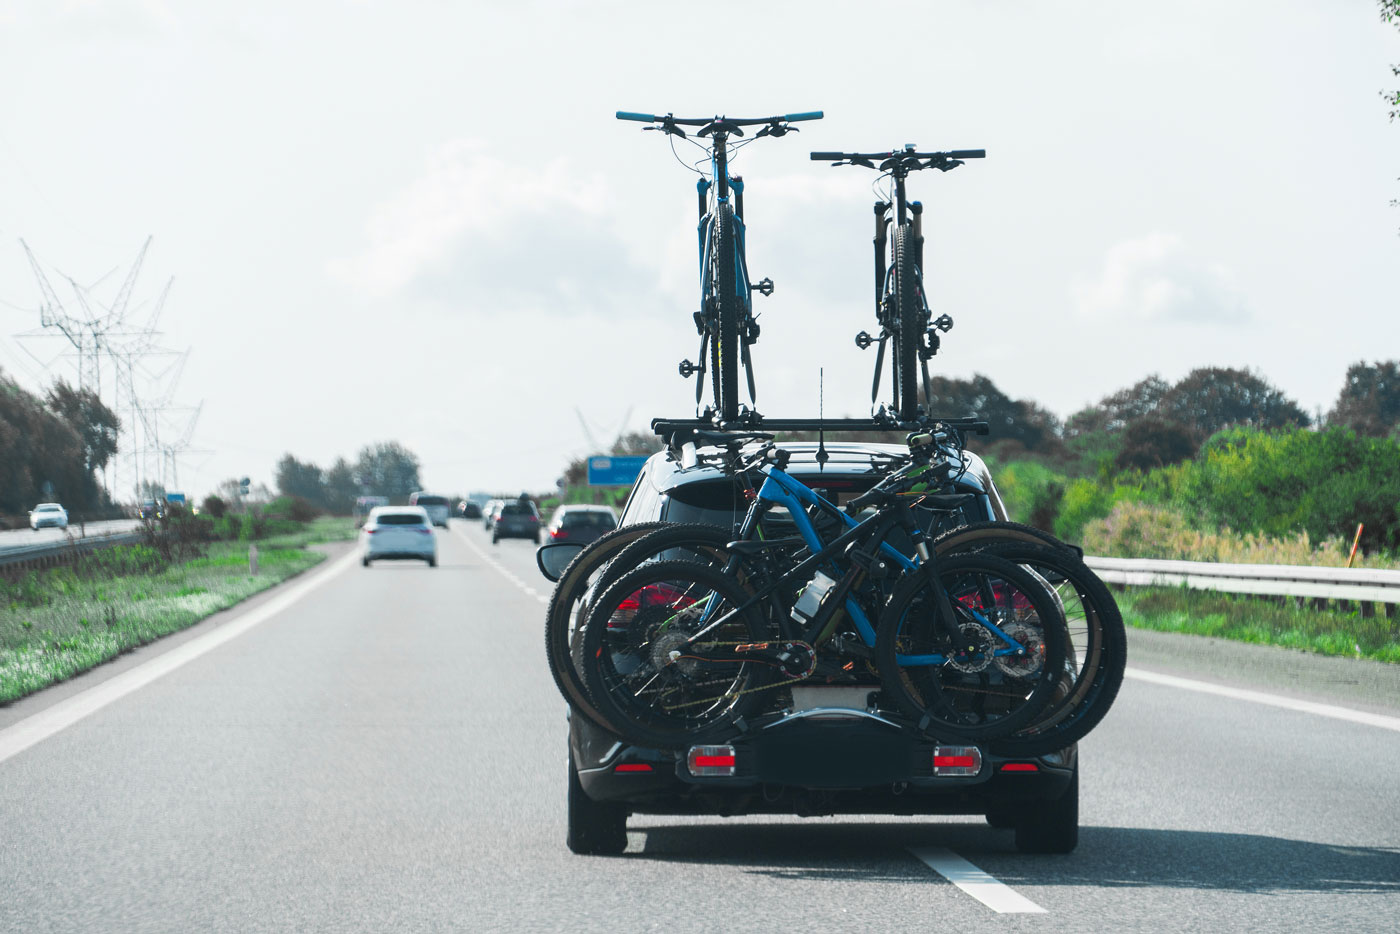 car with bikes mounted on top and from the back hitch